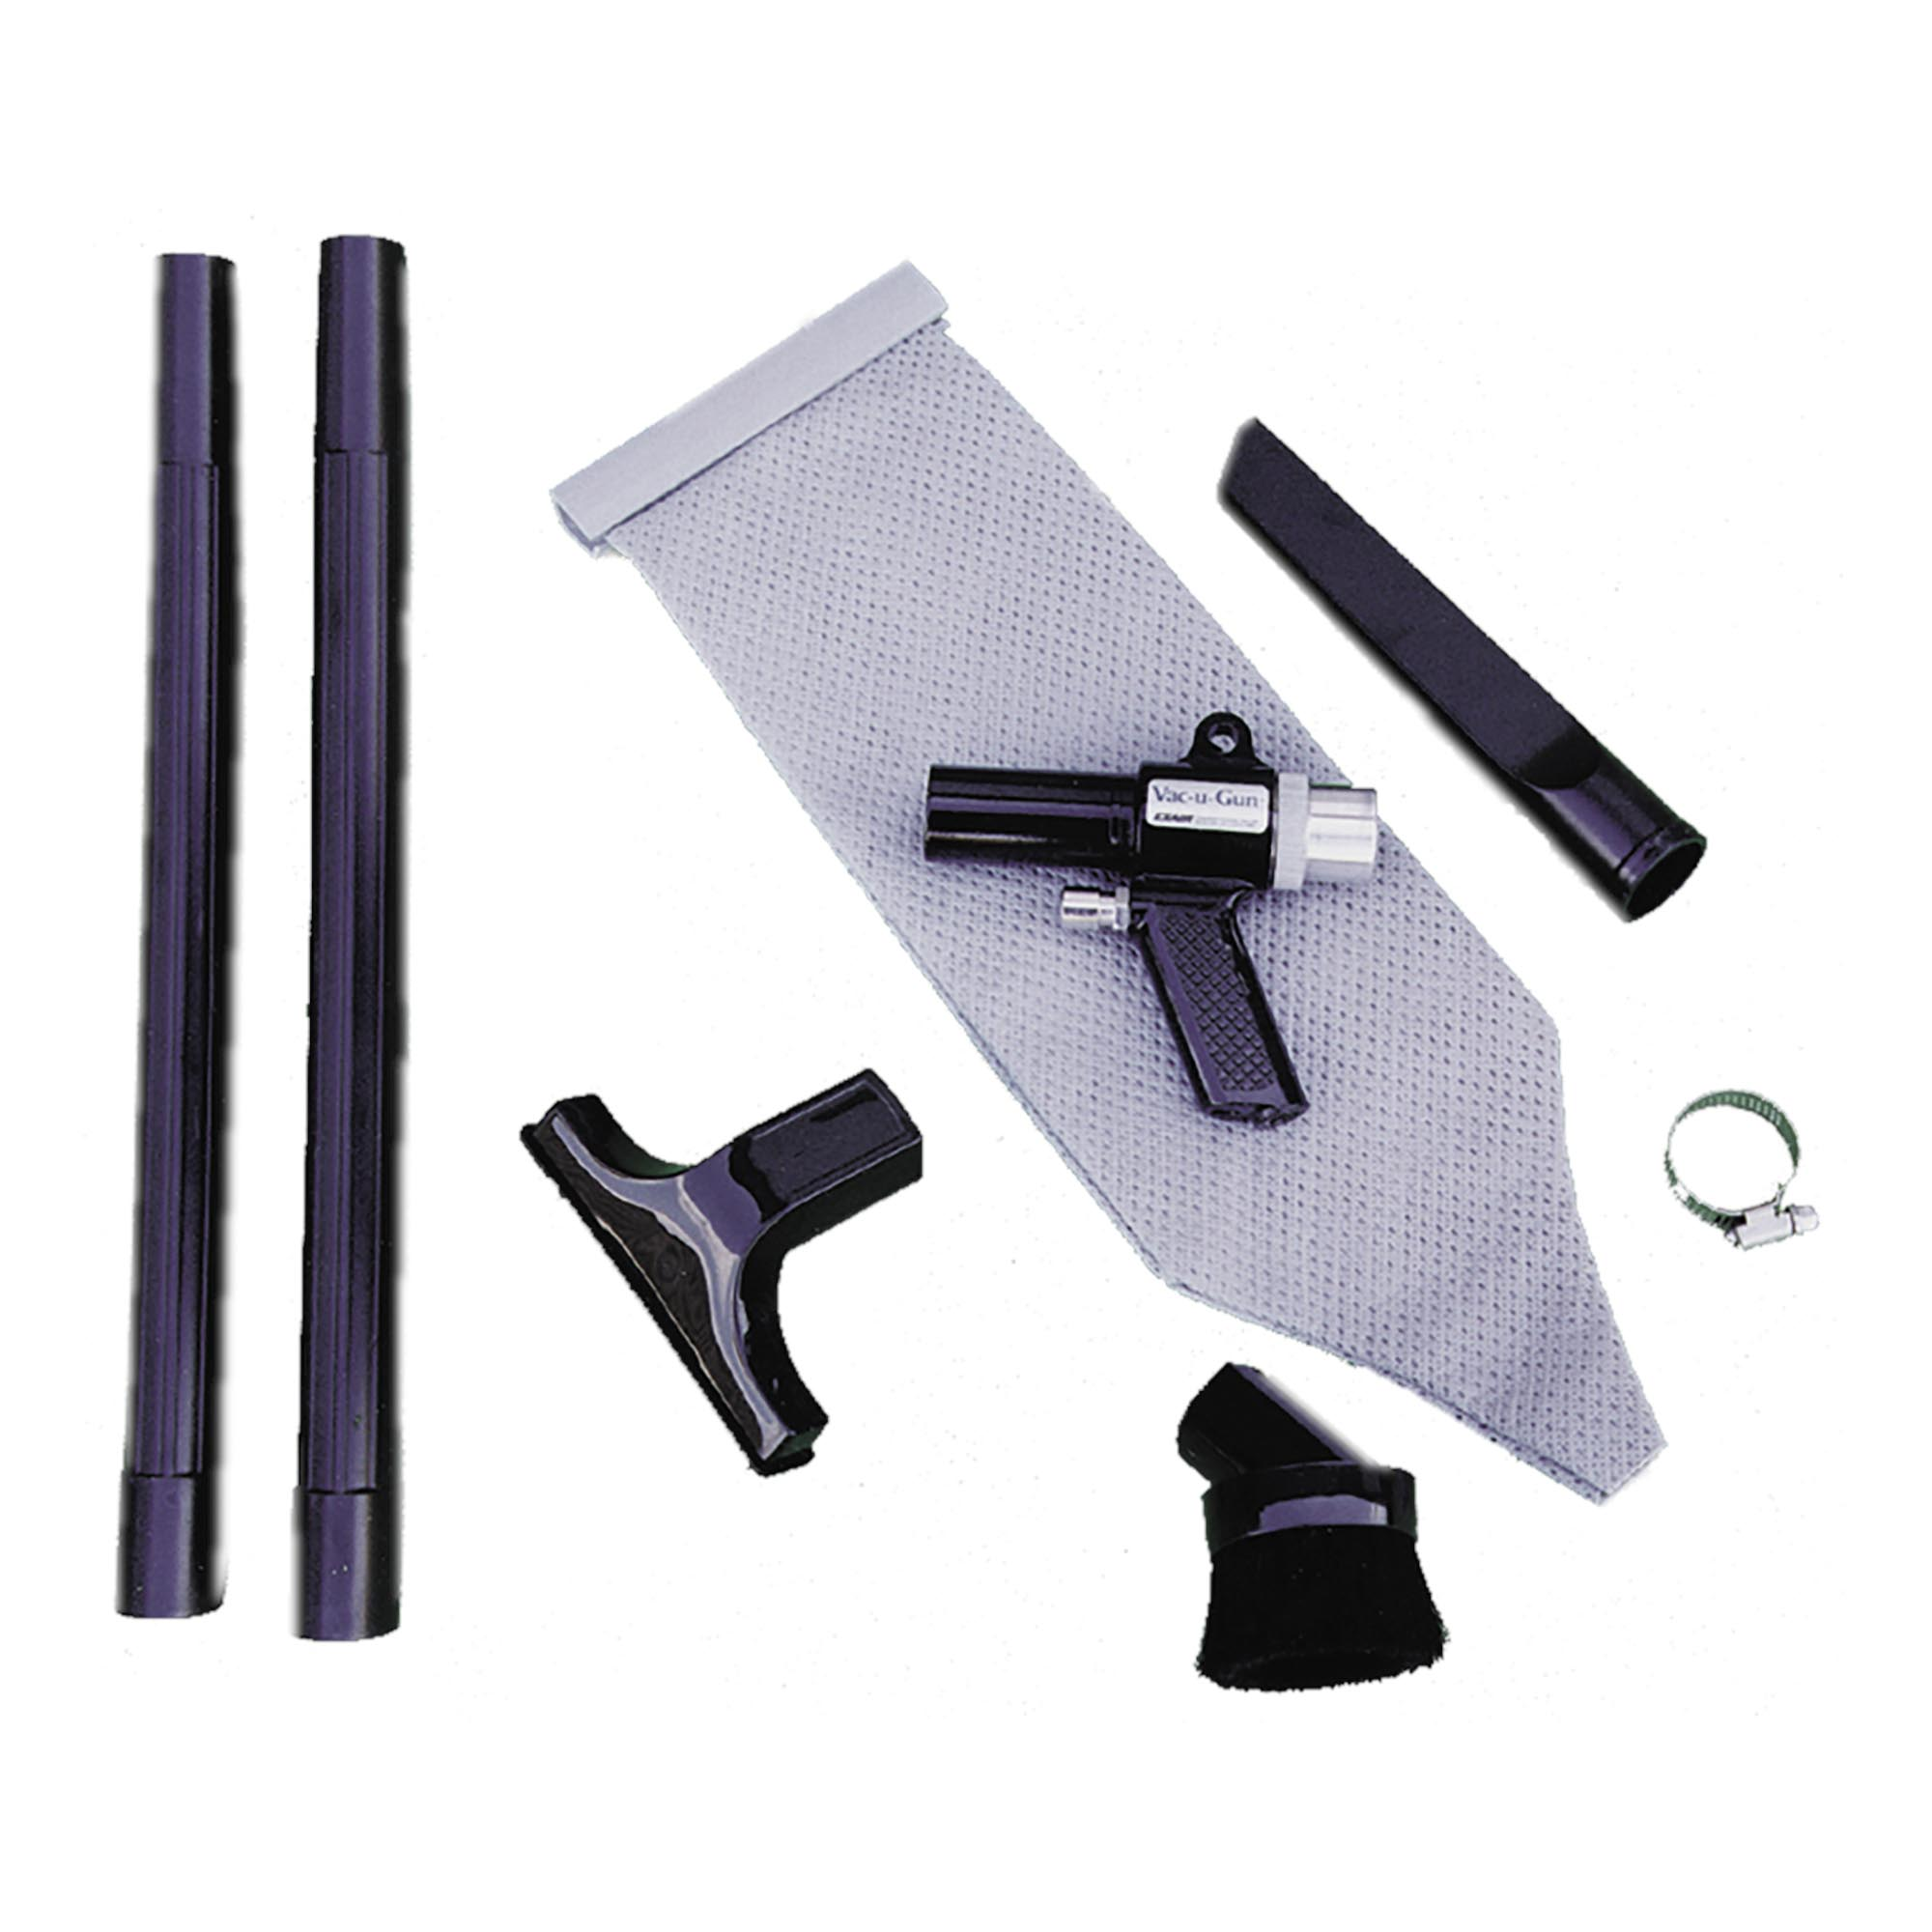 Model 6192 collection system includes the reusable vacuum bag and attachments.